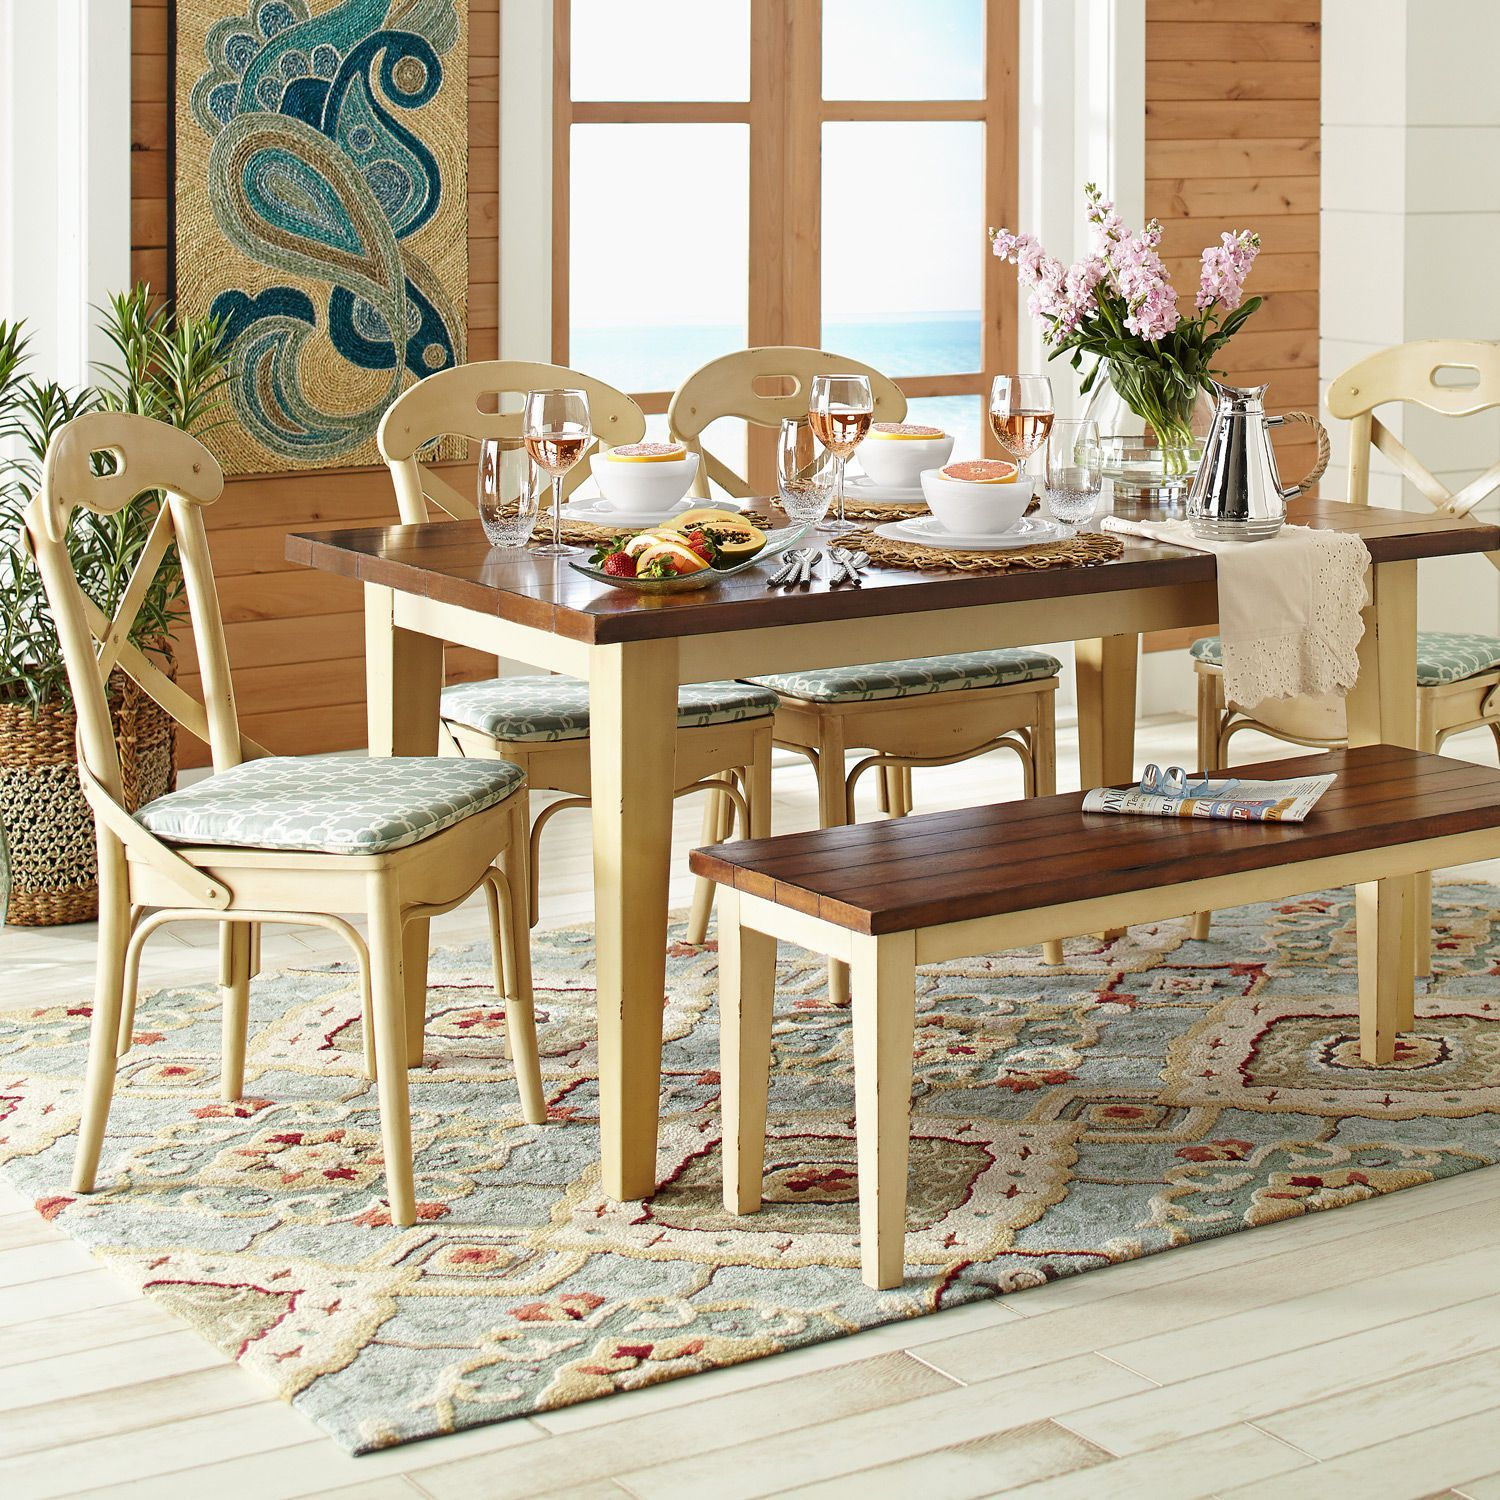 Antique wood dining tables farmhouse dining set  antique ivory  mahogany  furniture sets